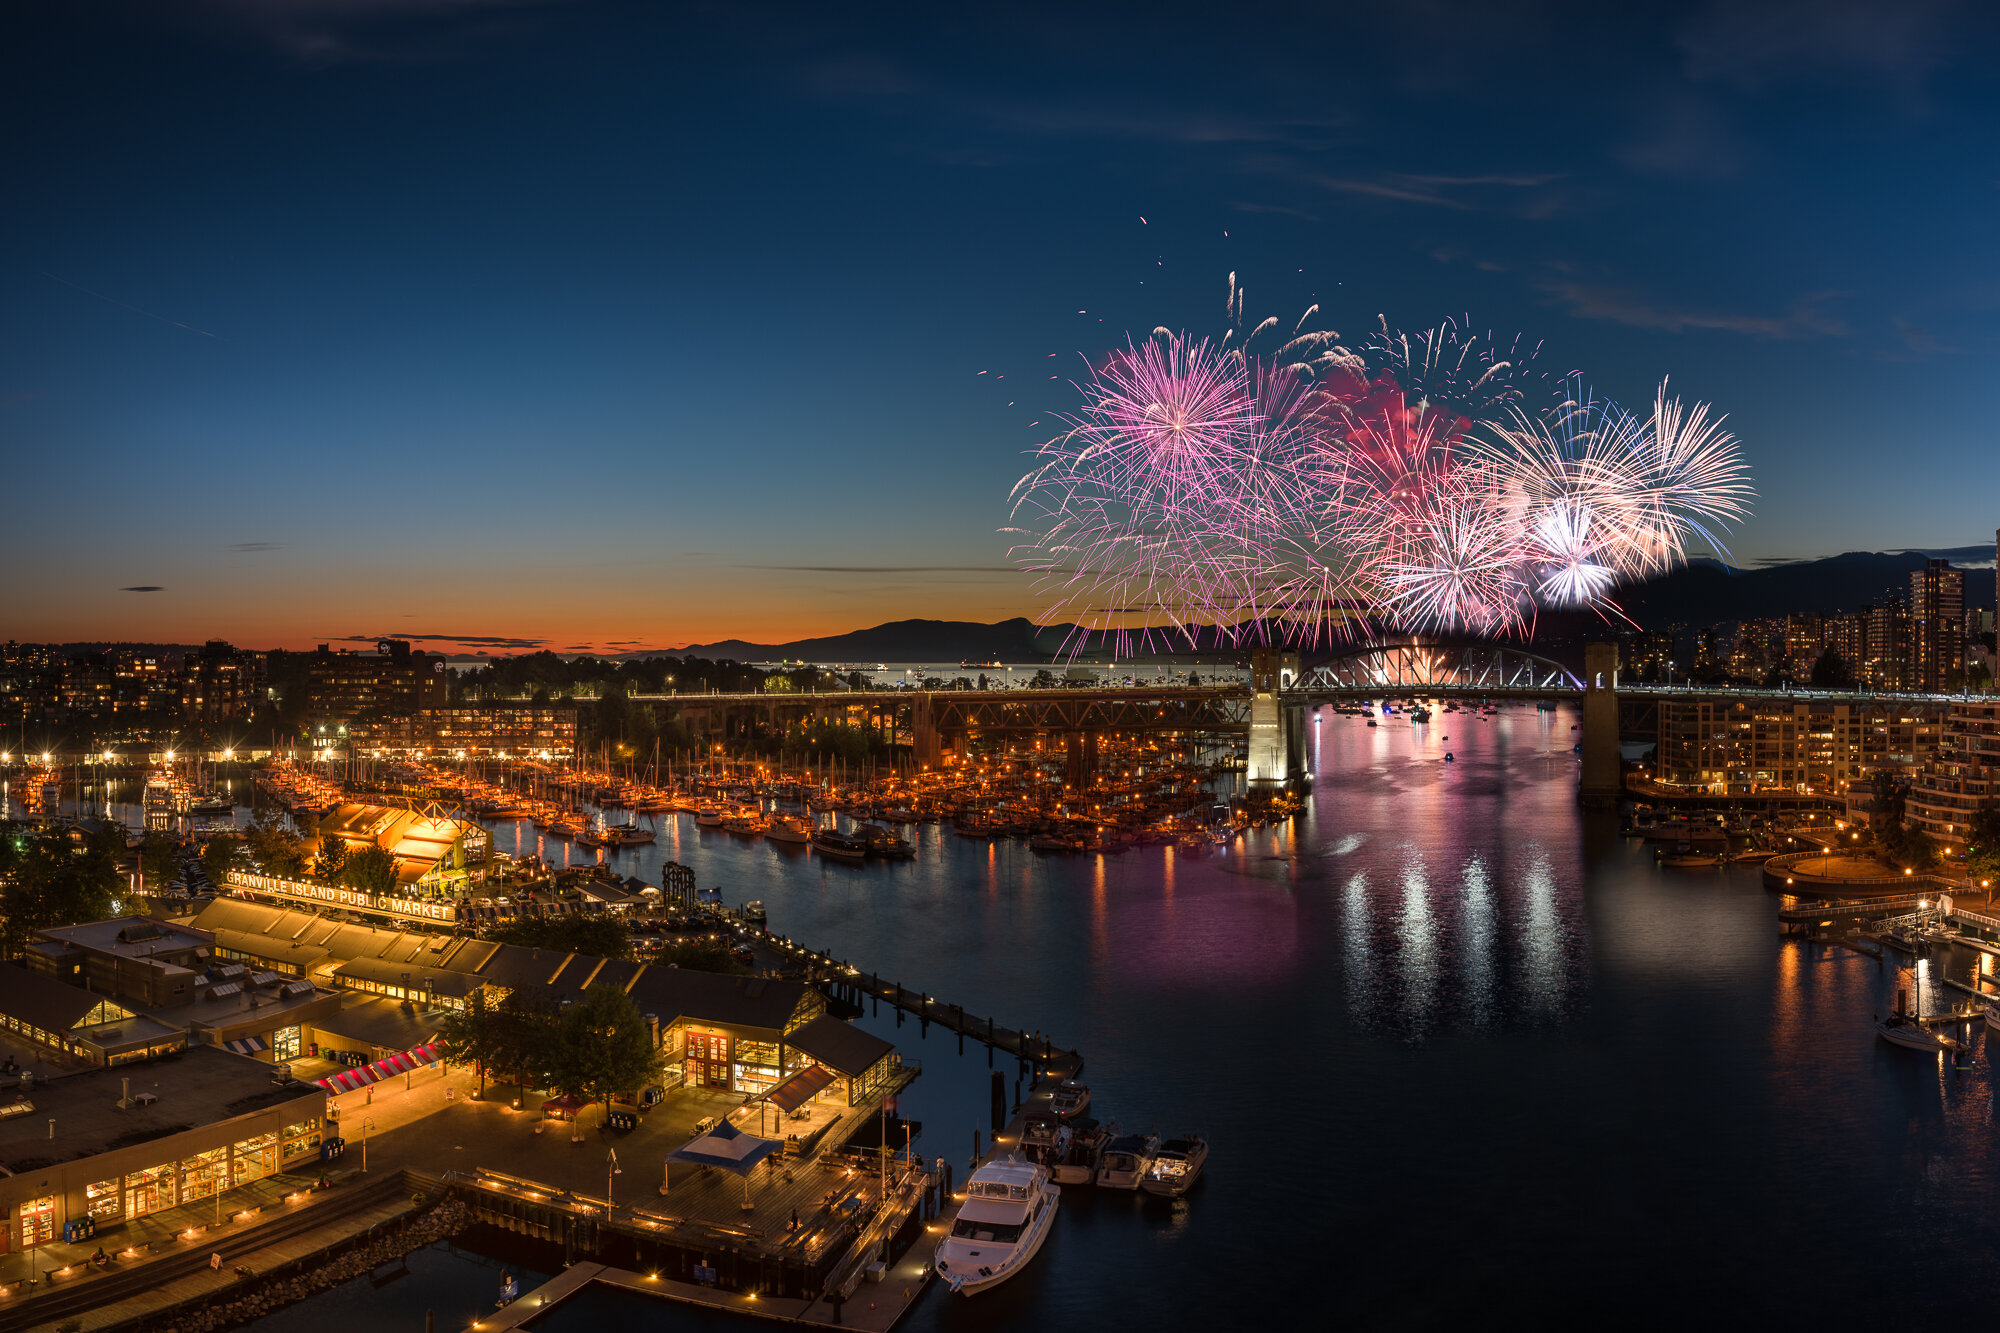 Vancouver City Photography: 'Granville Island Fireworks'